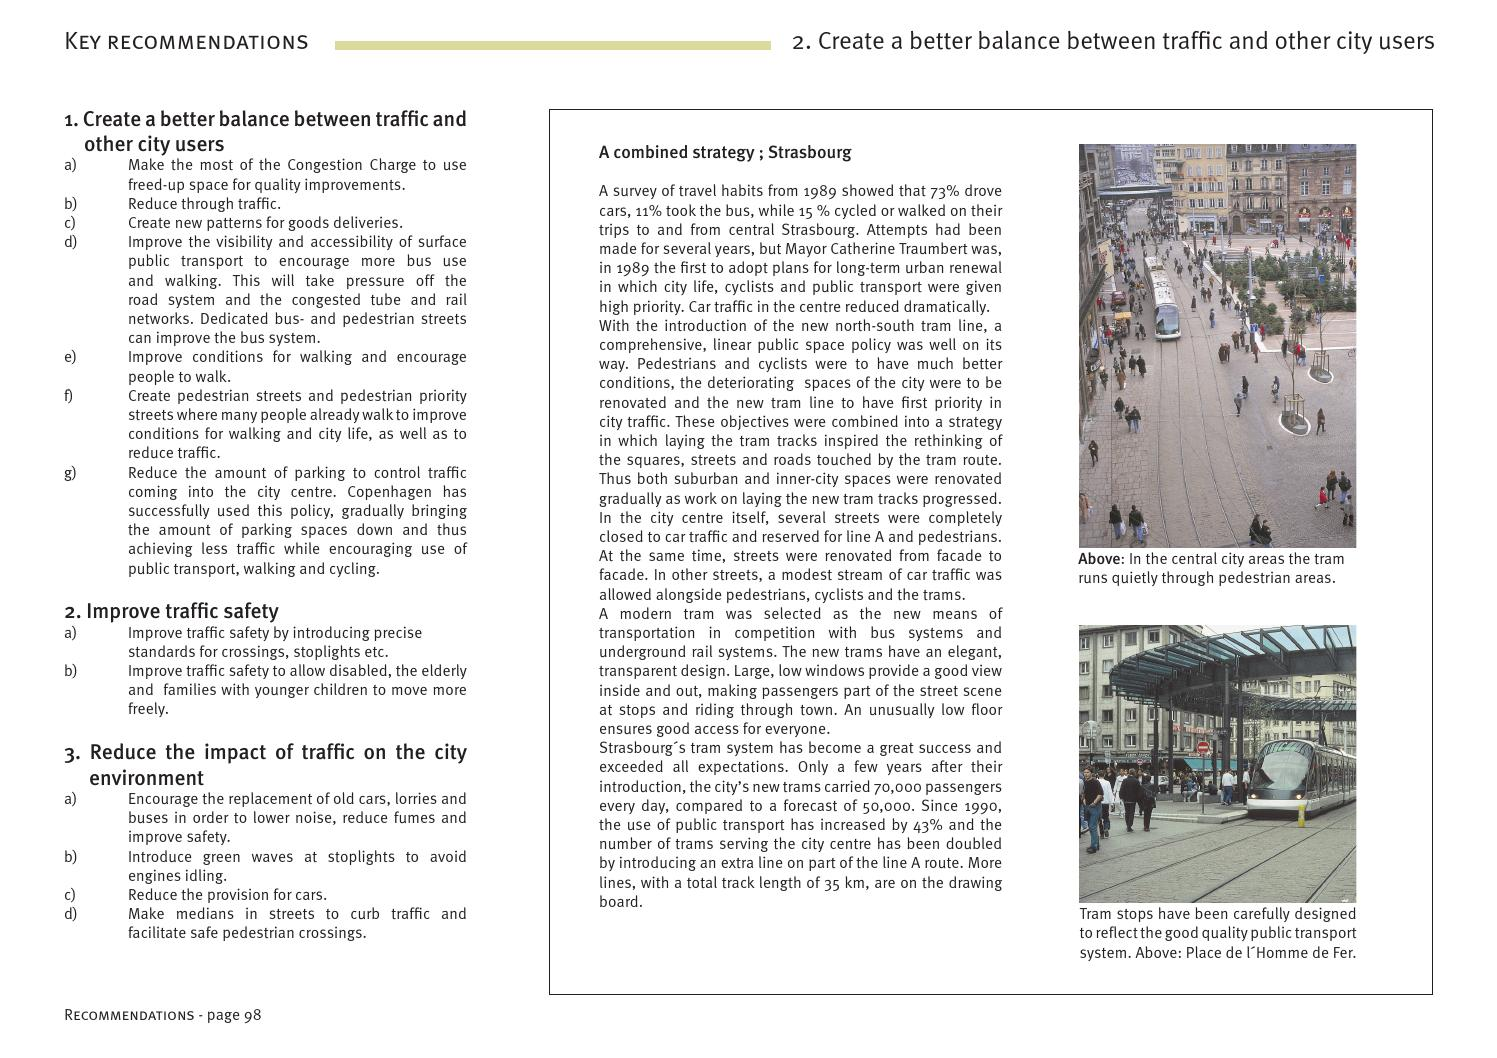 Towards a fine City for People by Gehl - Making Cities for People